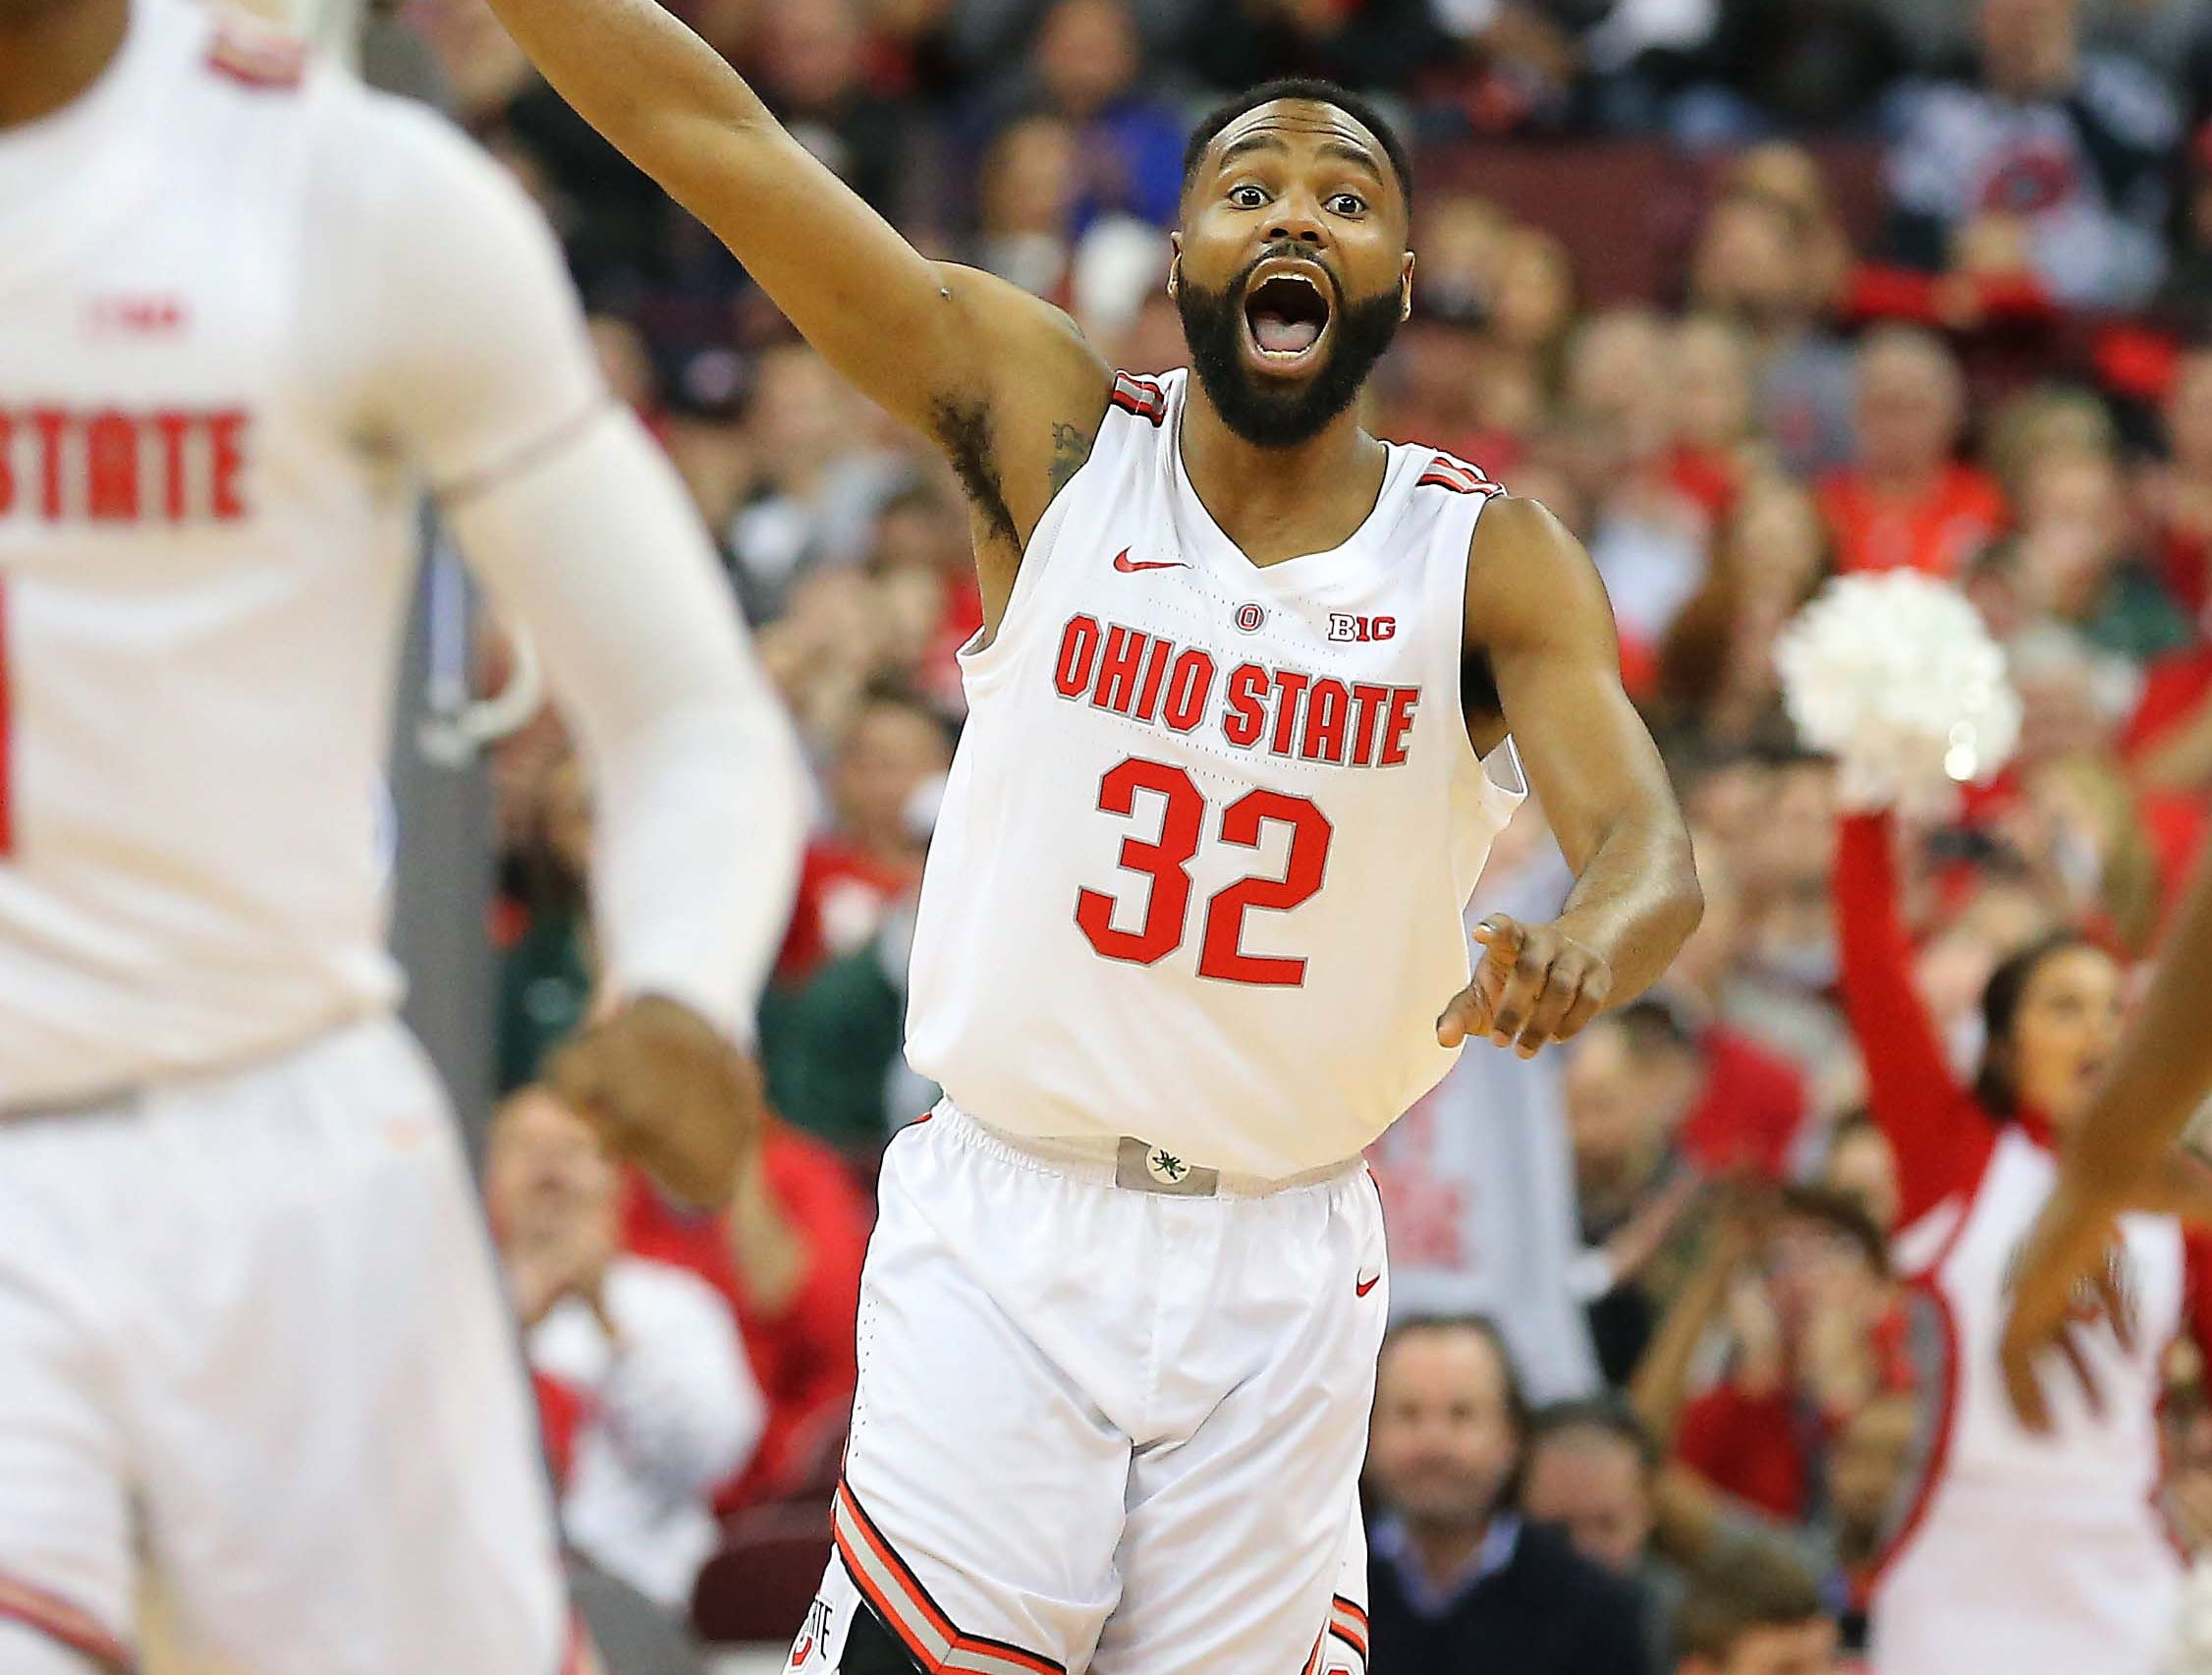 Jan 5, 2019; Columbus, OH, USA; Ohio State Buckeyes guard Keyshawn Woods (32) celebrates as the Buckeyes take the first half lead against the Michigan State Spartans at Value City Arena. Mandatory Credit: Joe Maiorana-USA TODAY Sports